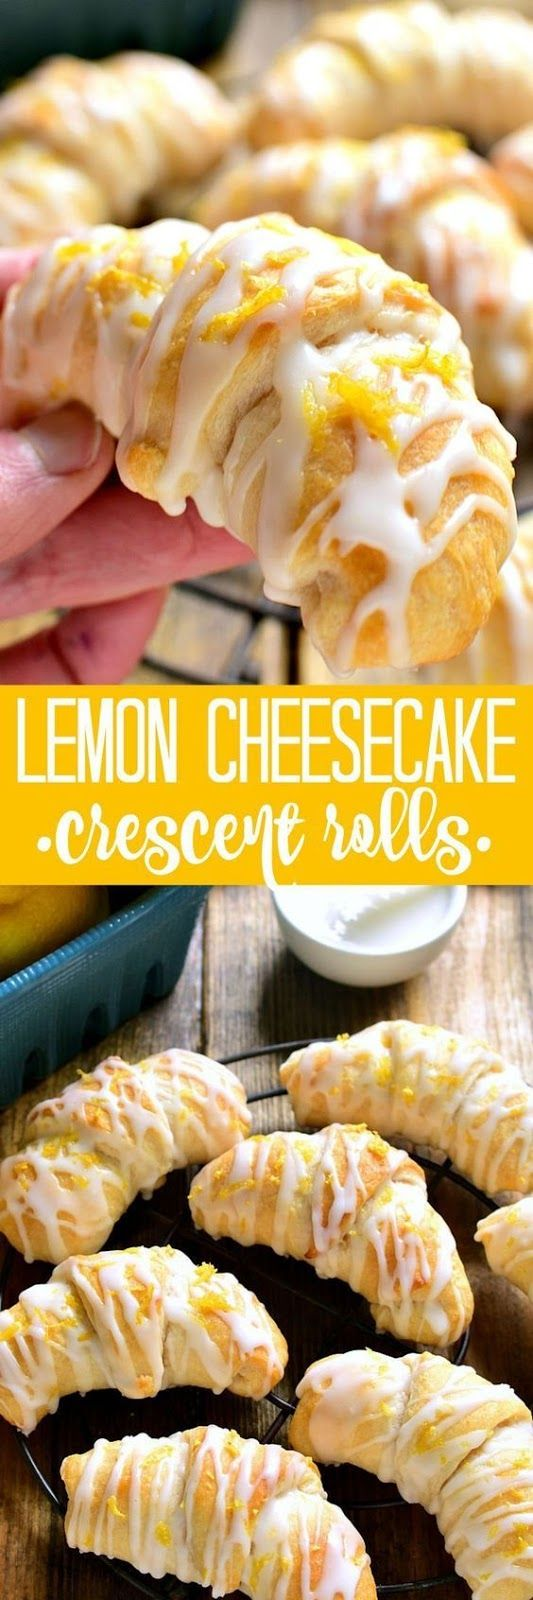 Lemon Cheesecake Crescent Rolls are bursting with delicious lemon flavor! These flaky crescent rolls are filled with creamy lemon cheesecake and topped with a sweet citrus glaze. The perfect brunch recipe!